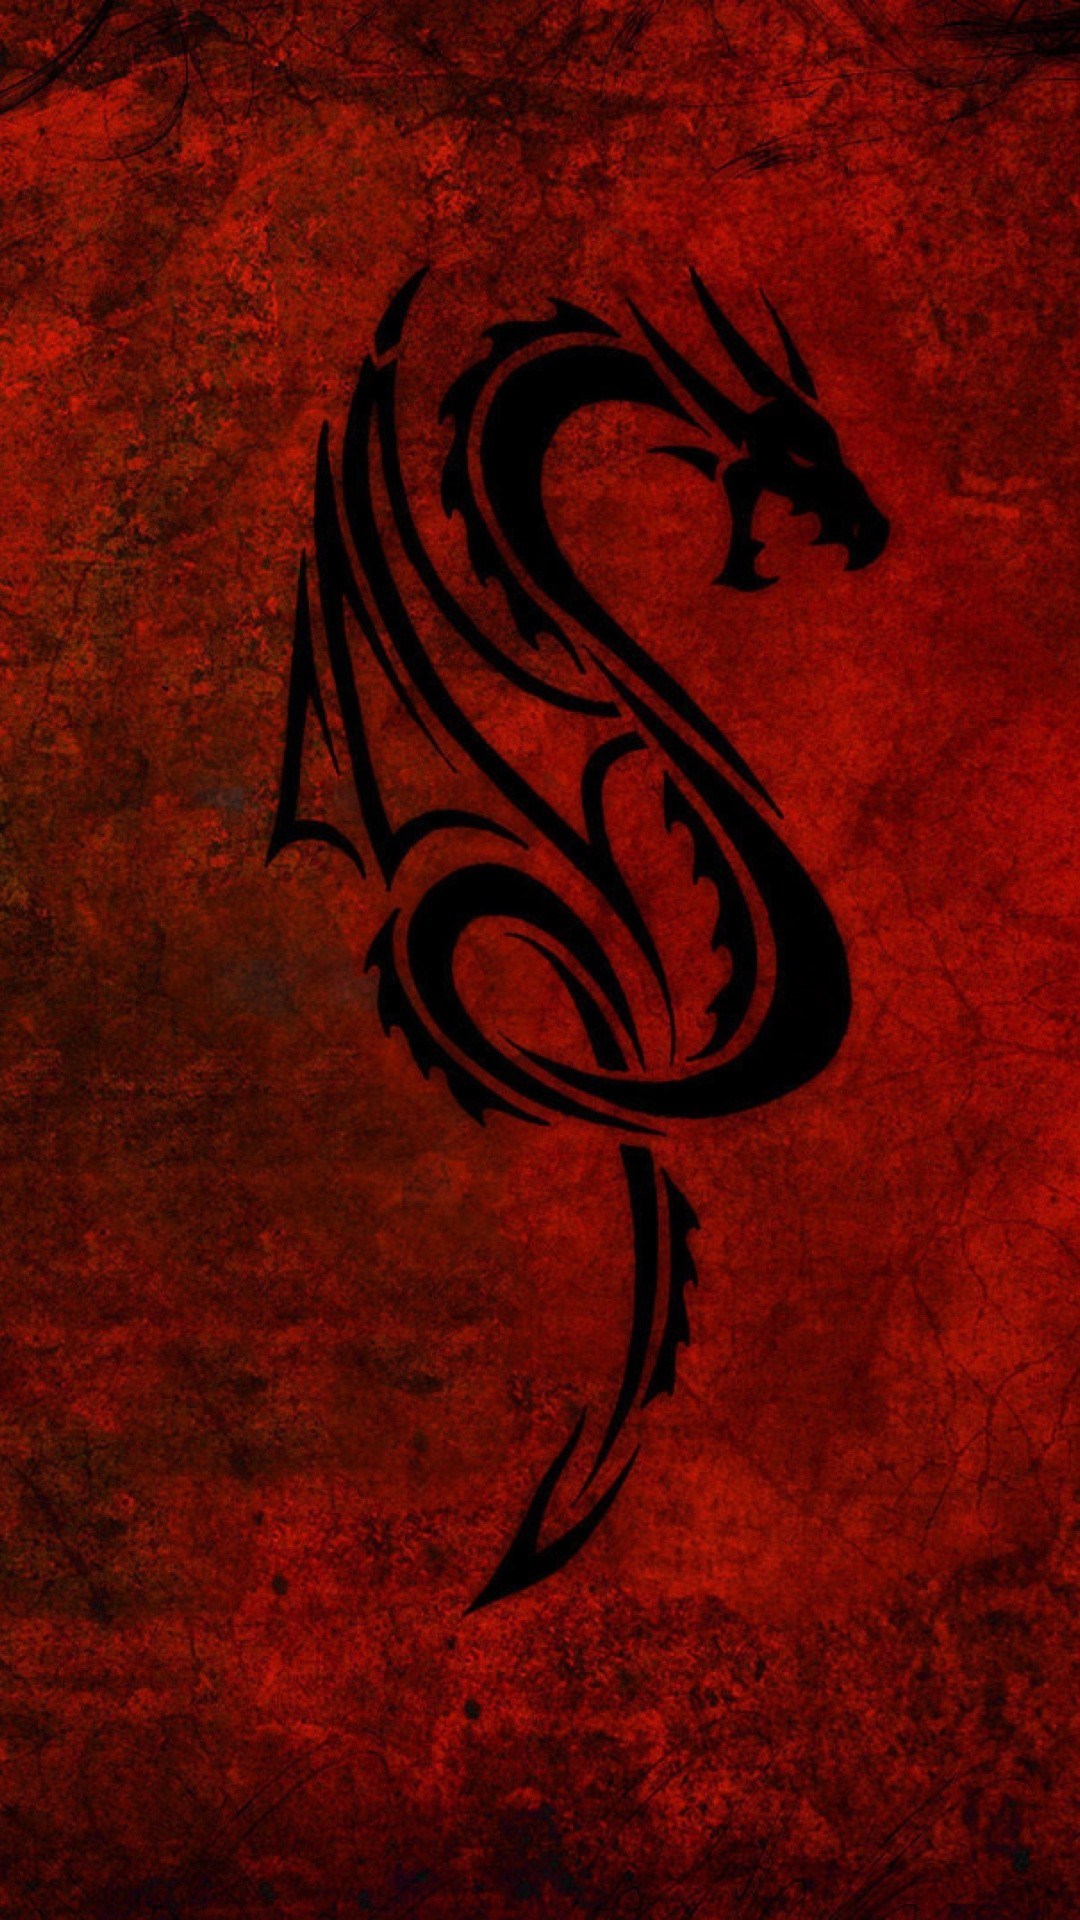 Dragon screensaver wallpaper